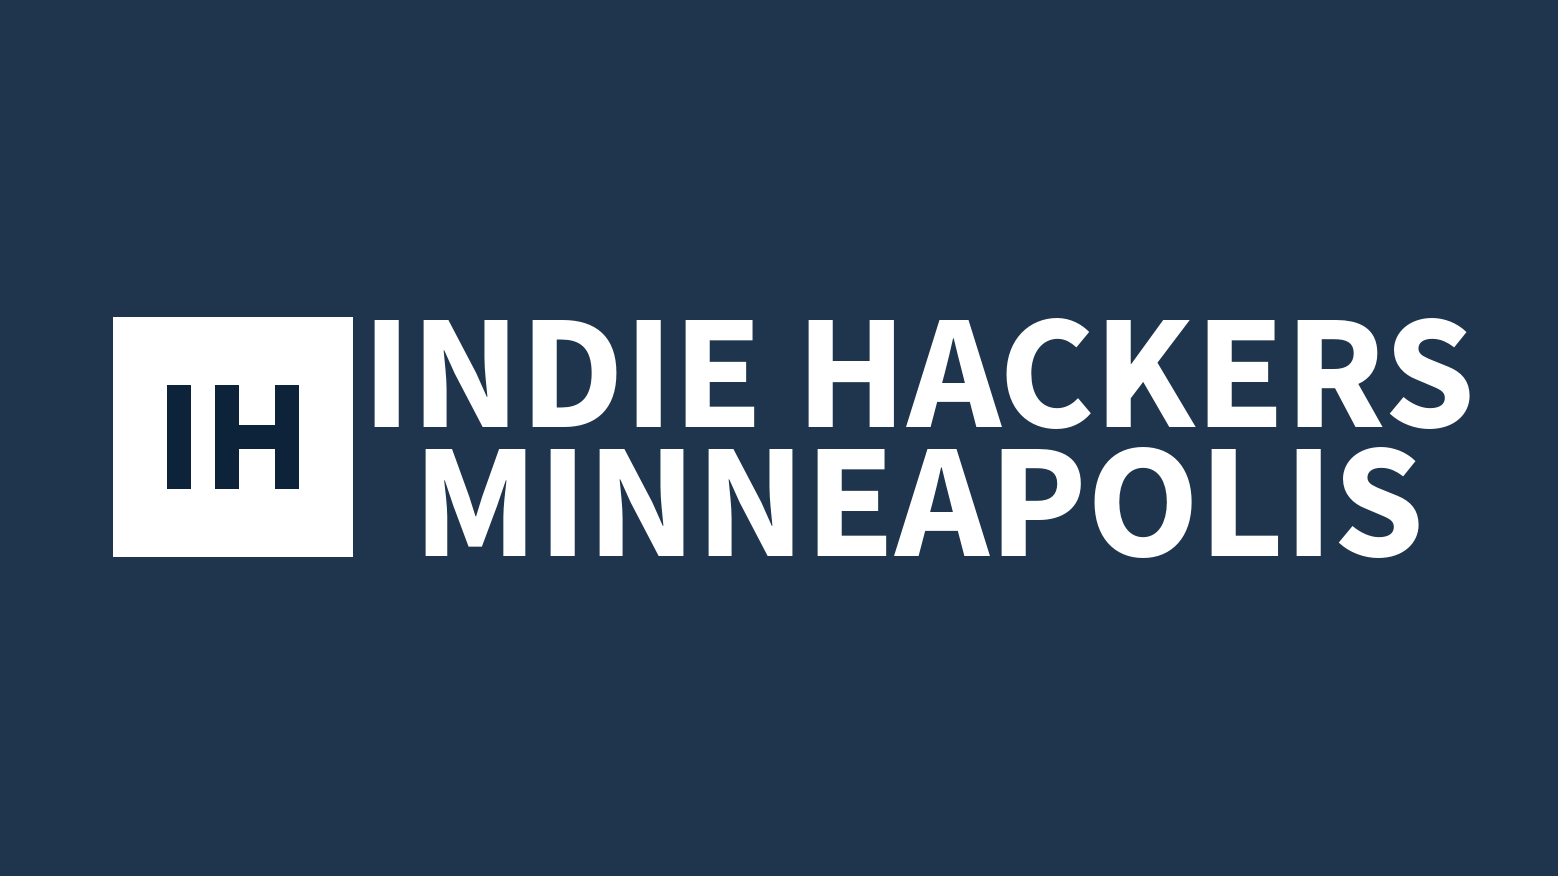 Indie Hackers Minneapolis